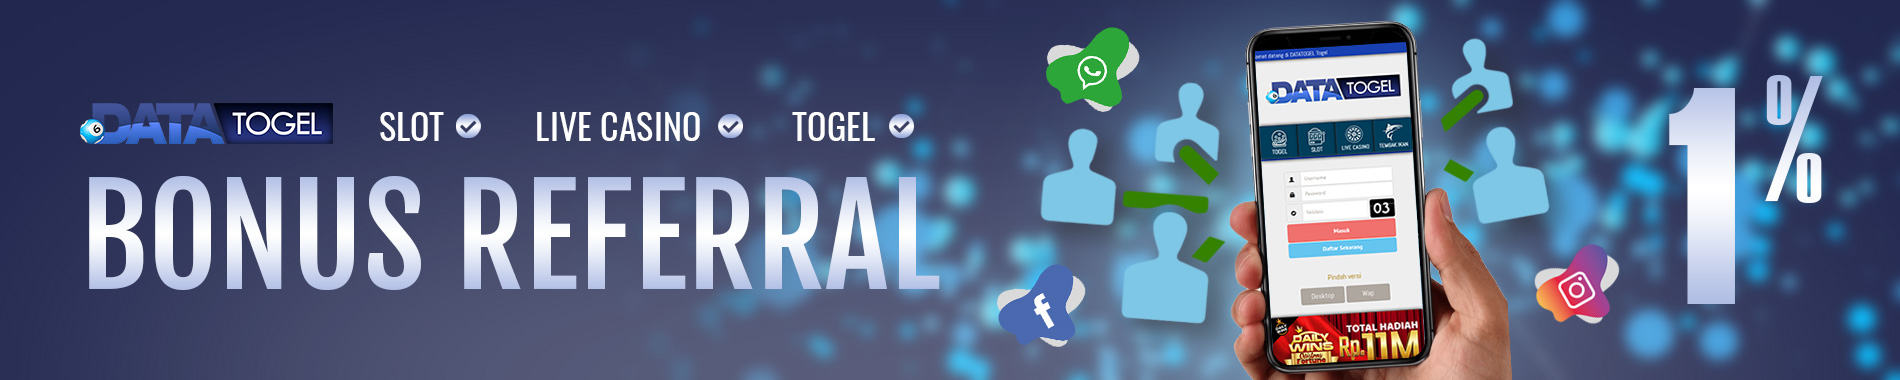 DATATOGEL BONUS REFERRAL 1%